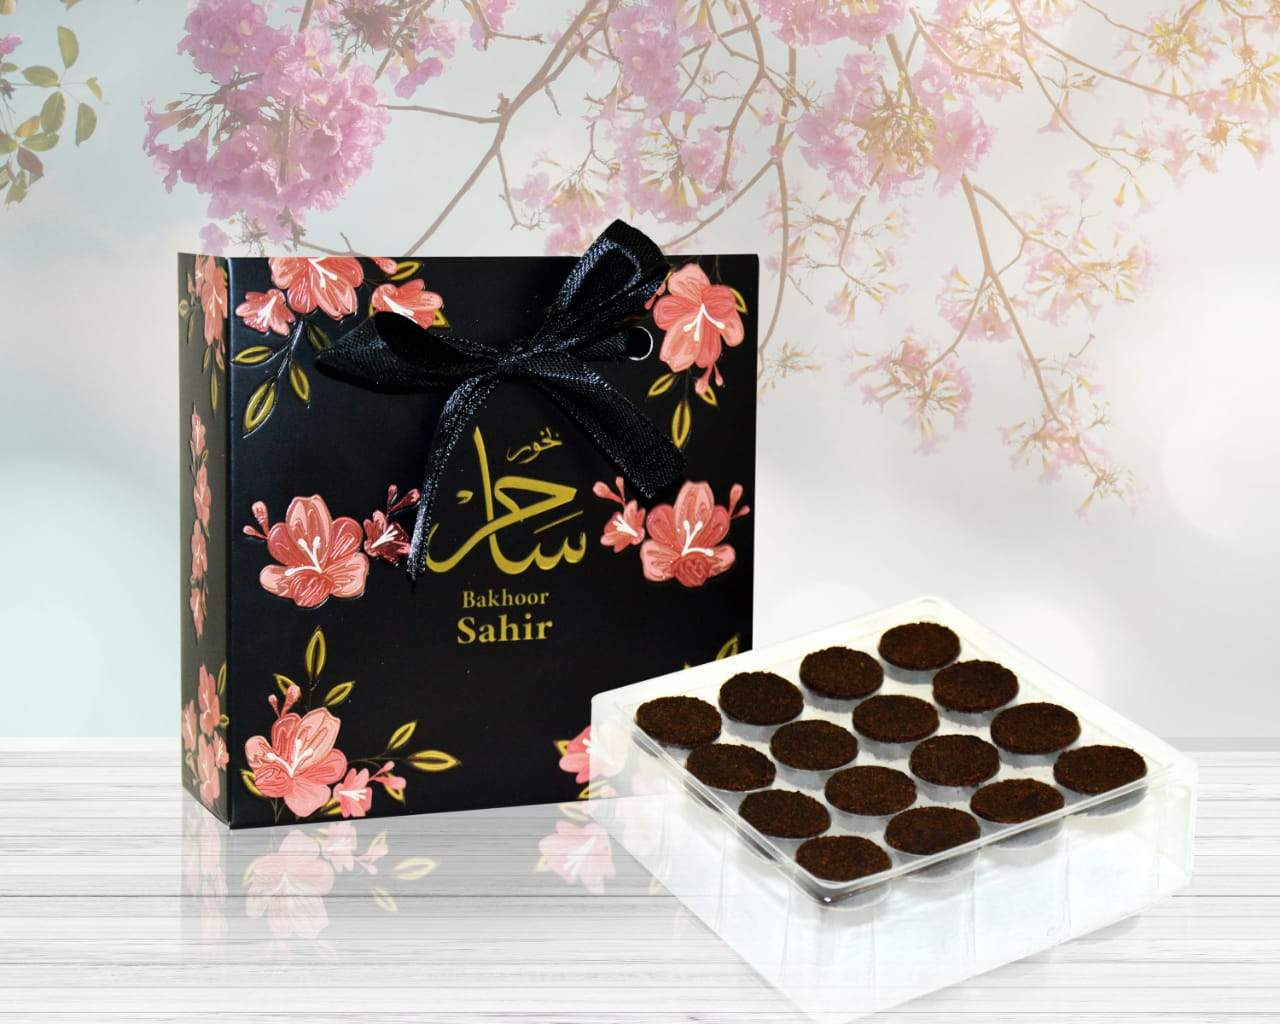 Bakhoor Sahir 16 Tablet Made in UAE (Dubai)